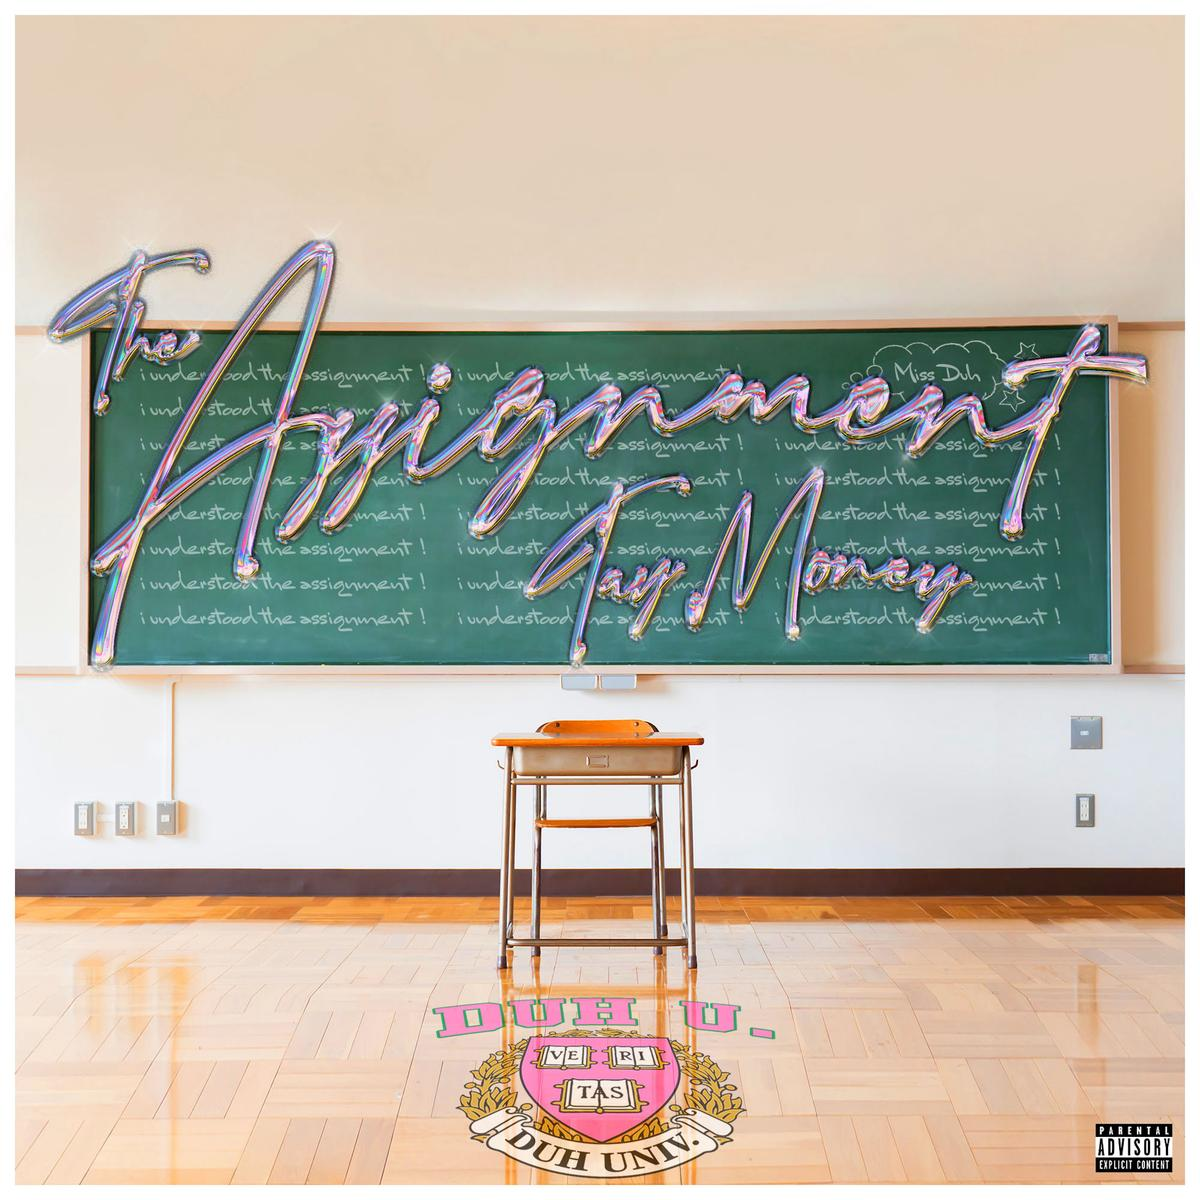 Tay Money - The Assignment